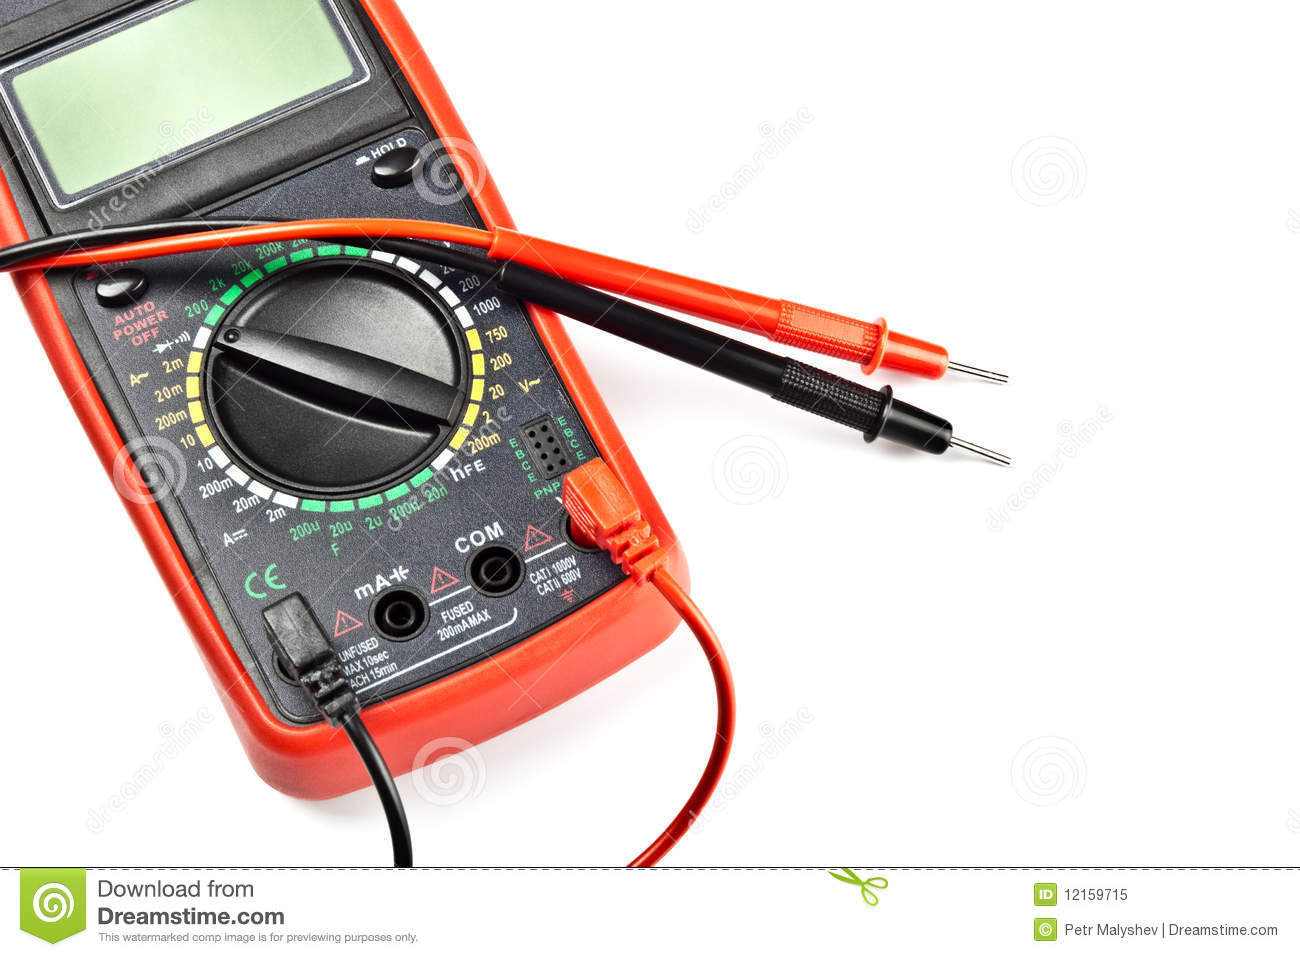 Electronic Measuring Devices Measure : Electronic measuring device royalty free stock photo